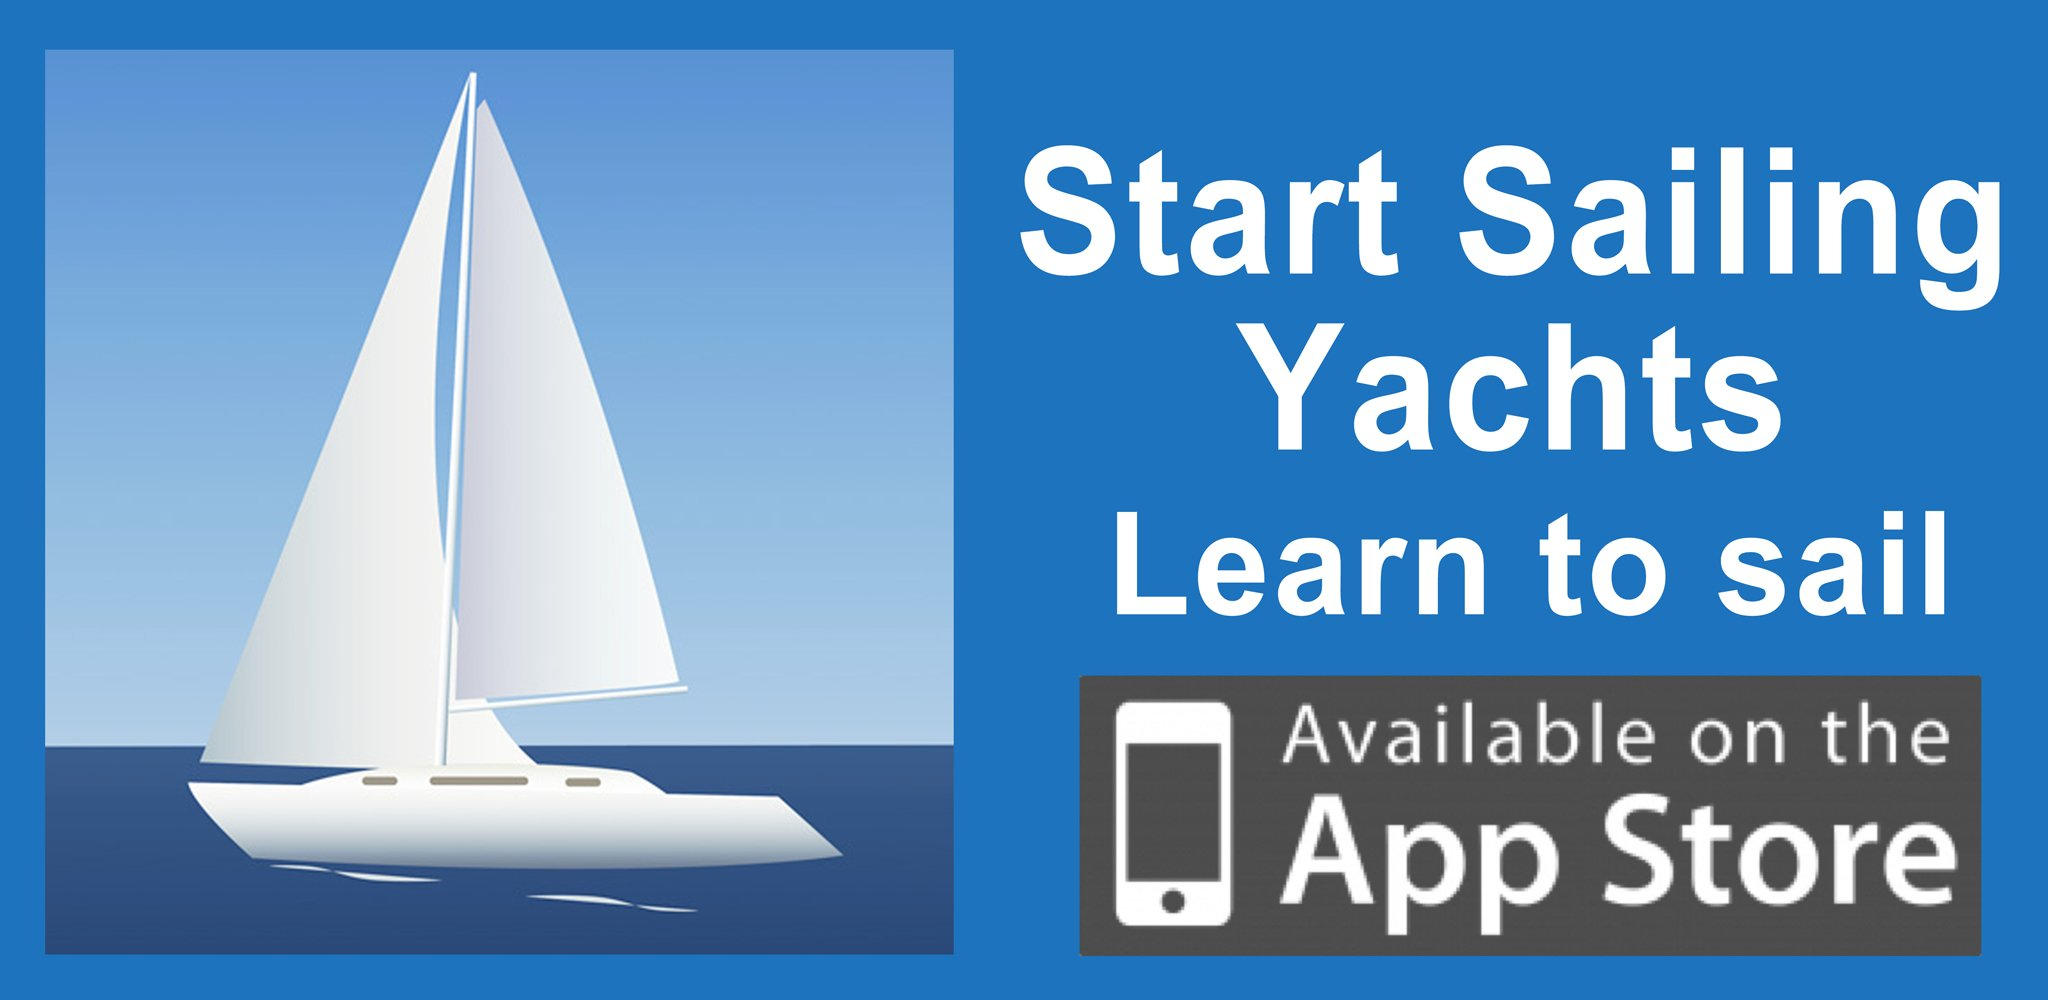 Start Sailing Yachts app for learning to sail